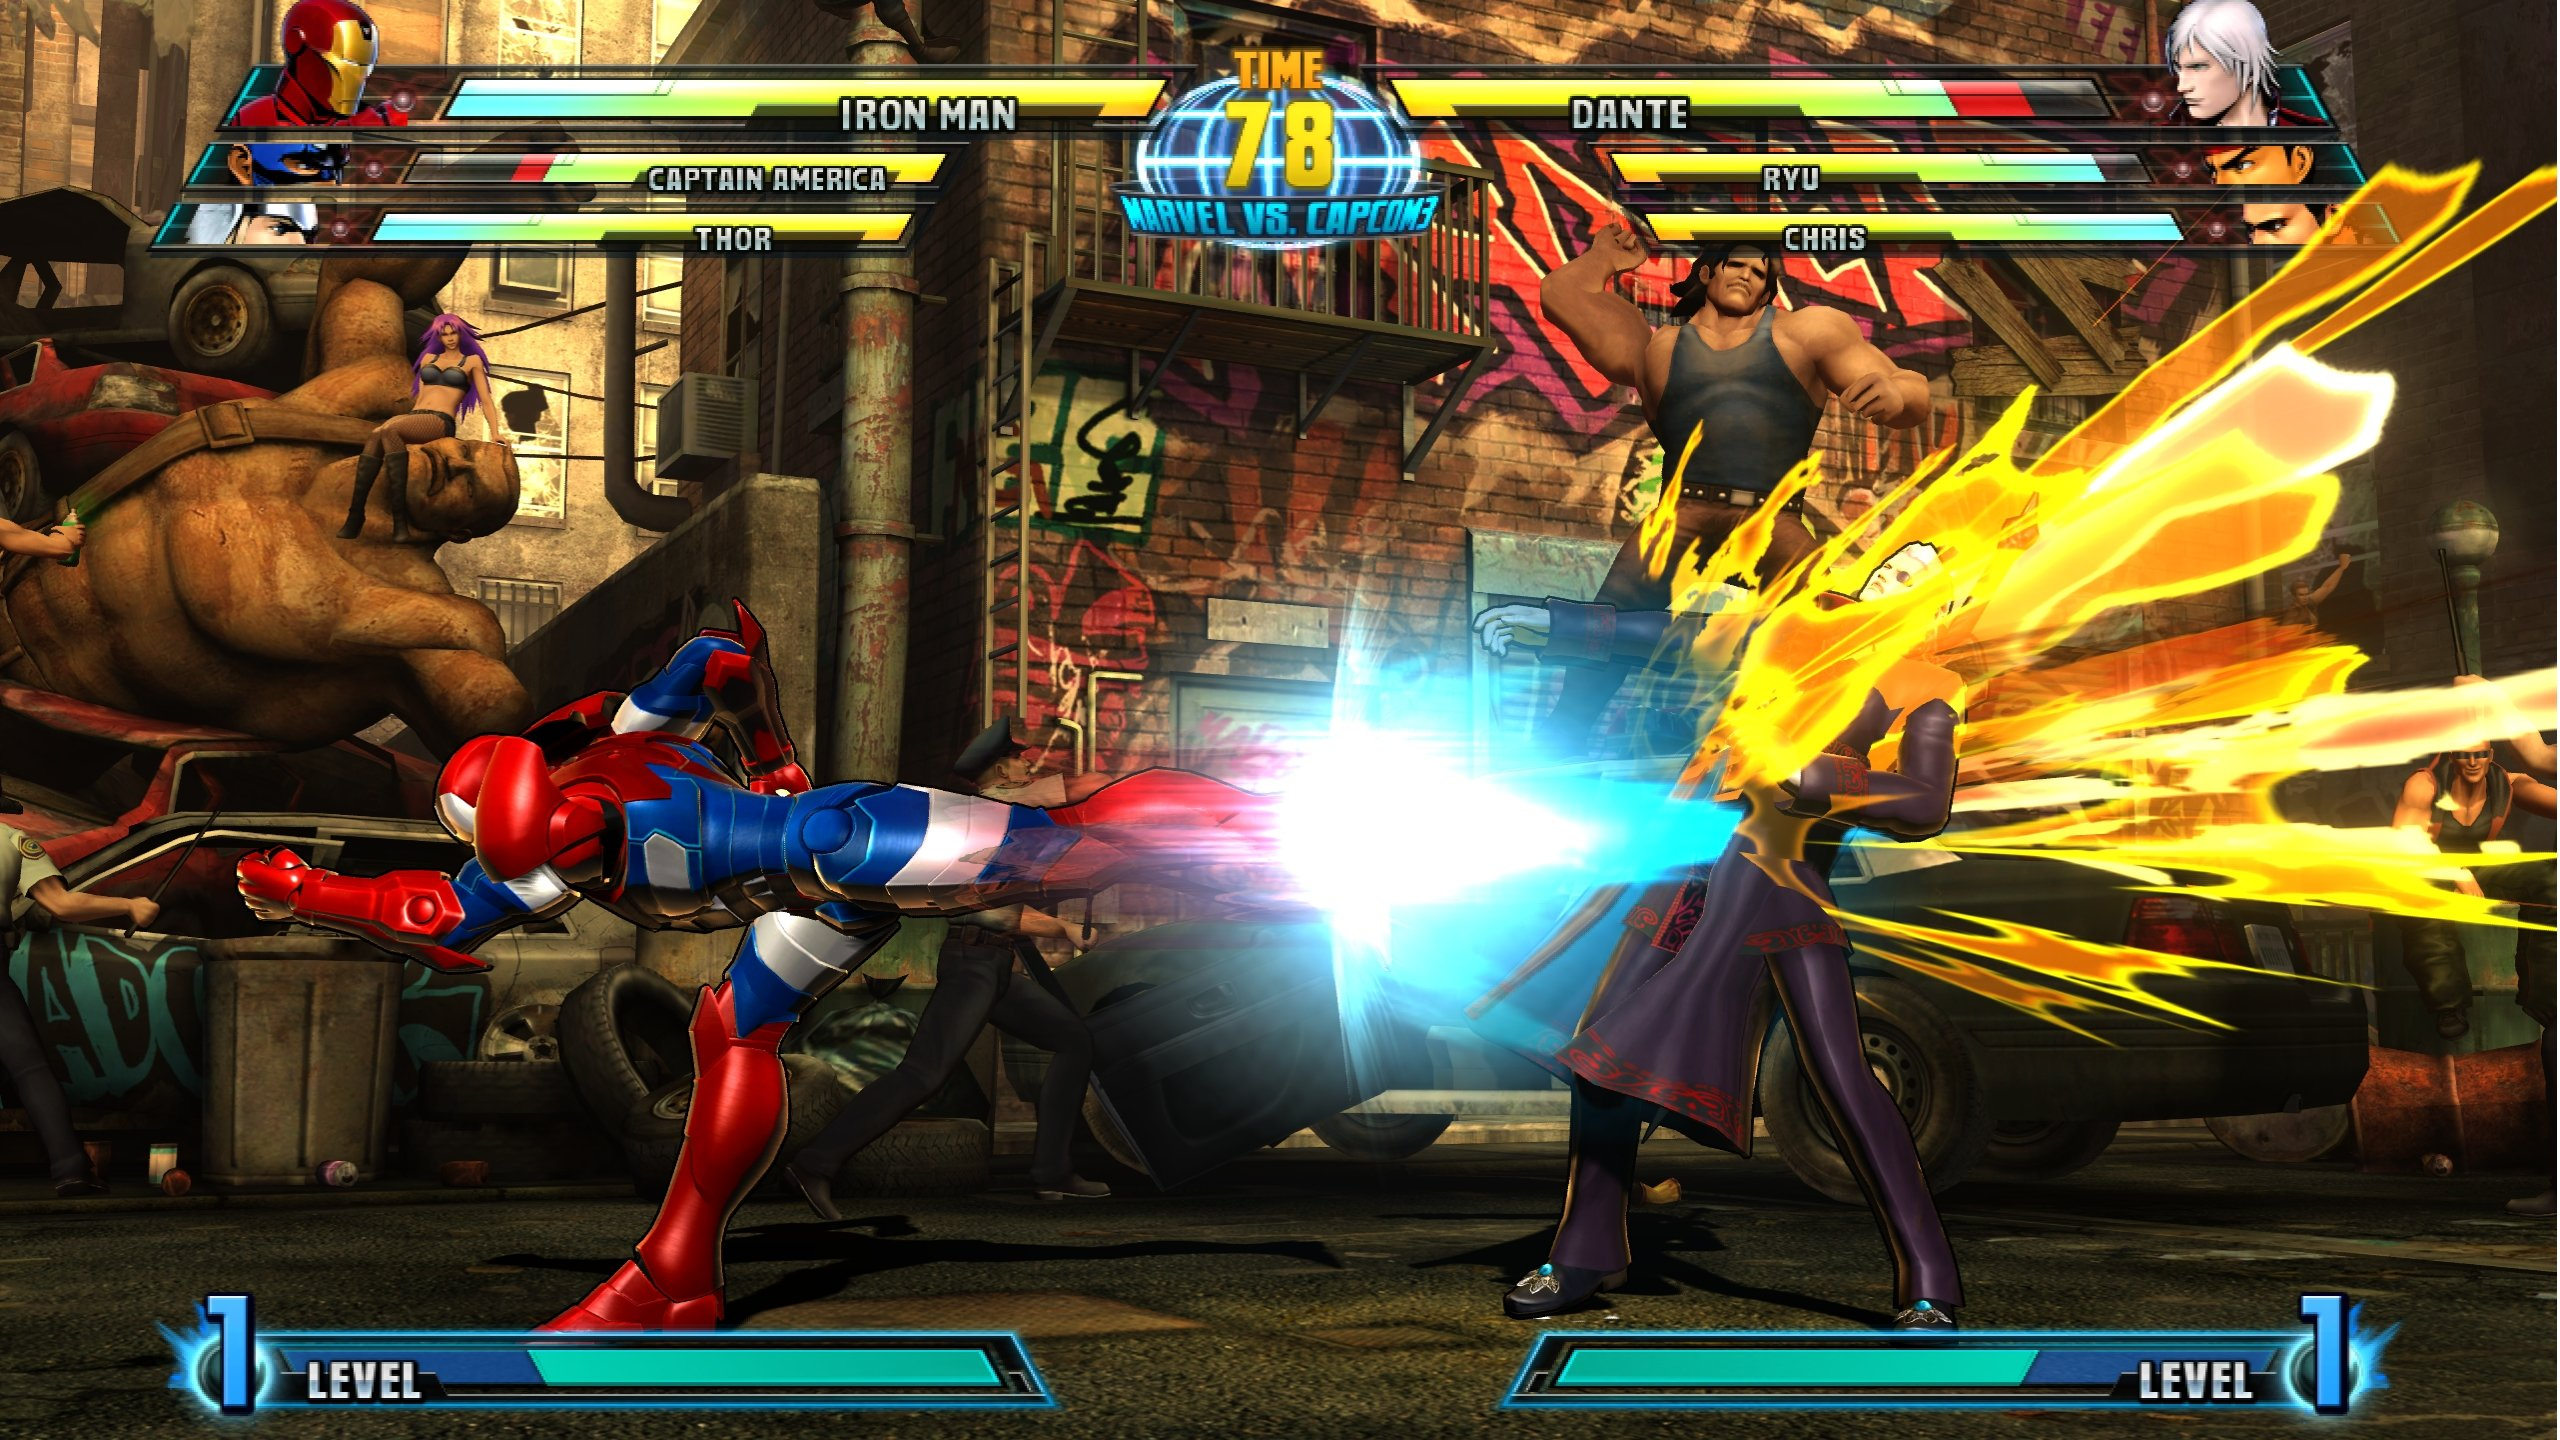 Marvel vs. Capcom 3: Fate of Two Worlds - Marvel vs. Capcom 3: Fate of Two Worlds